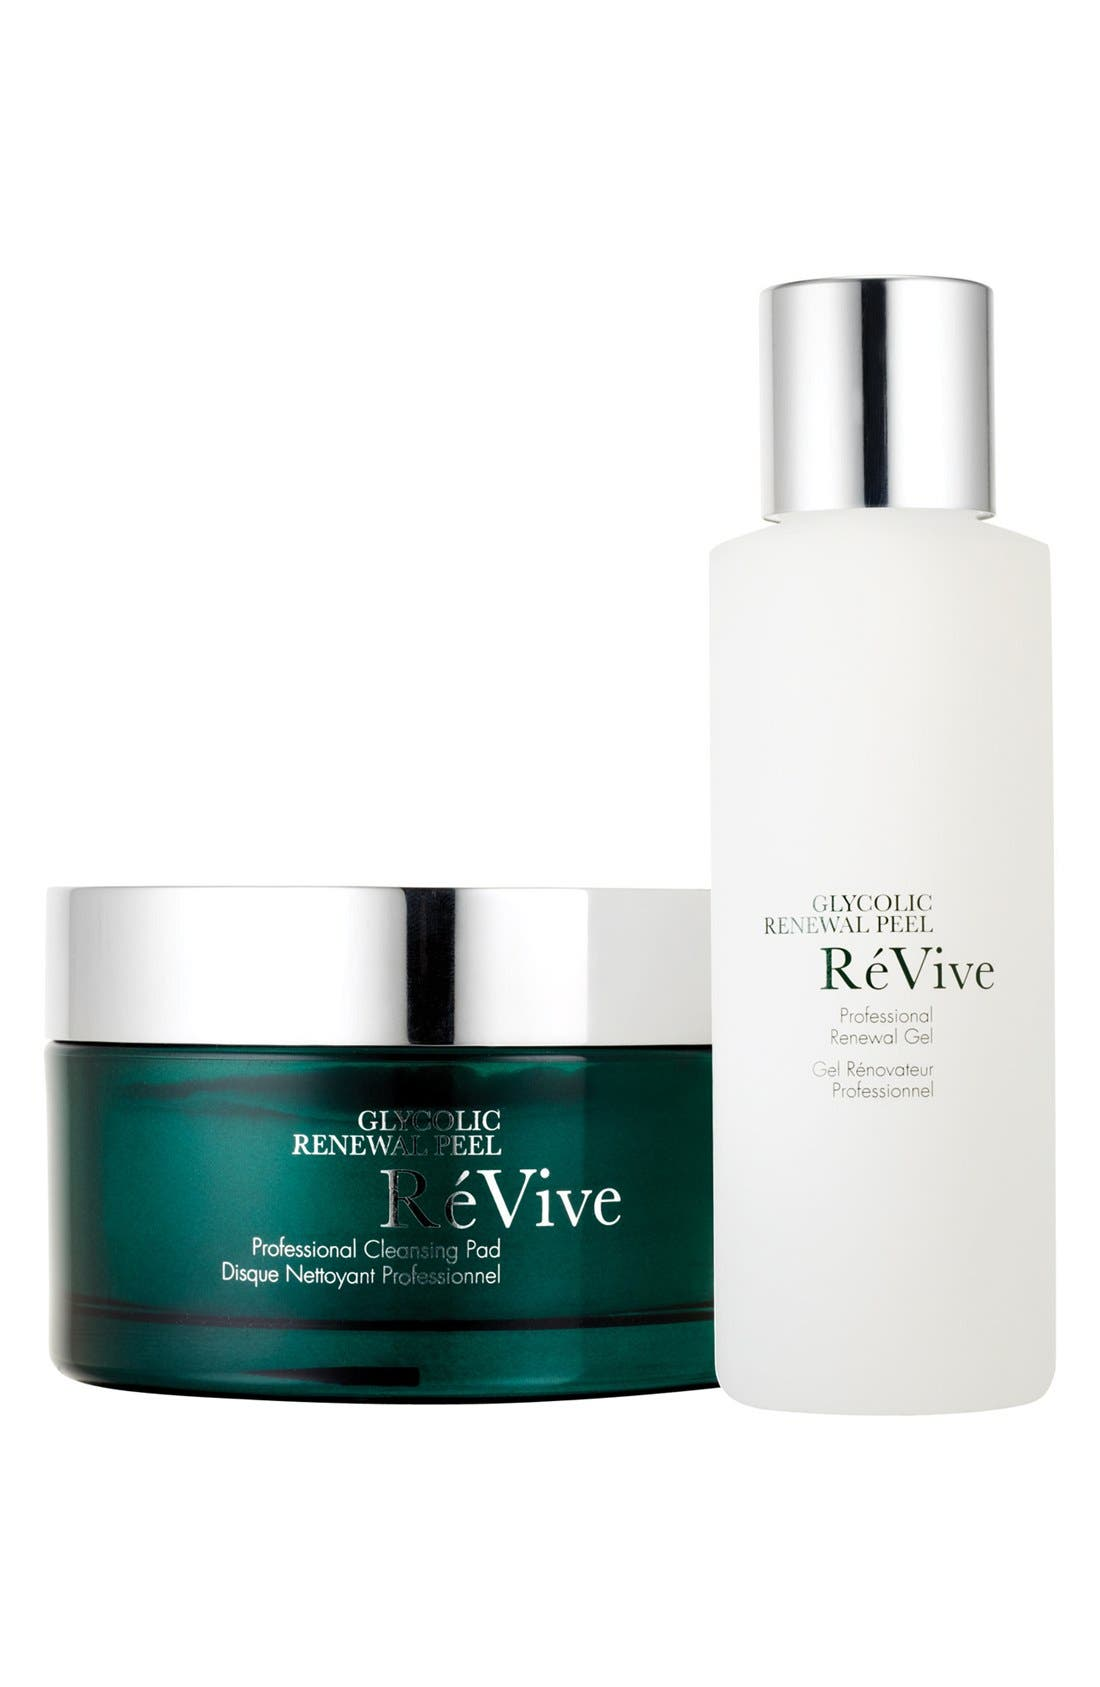 Glycolic Renewal Peel Duo,                             Main thumbnail 1, color,                             000